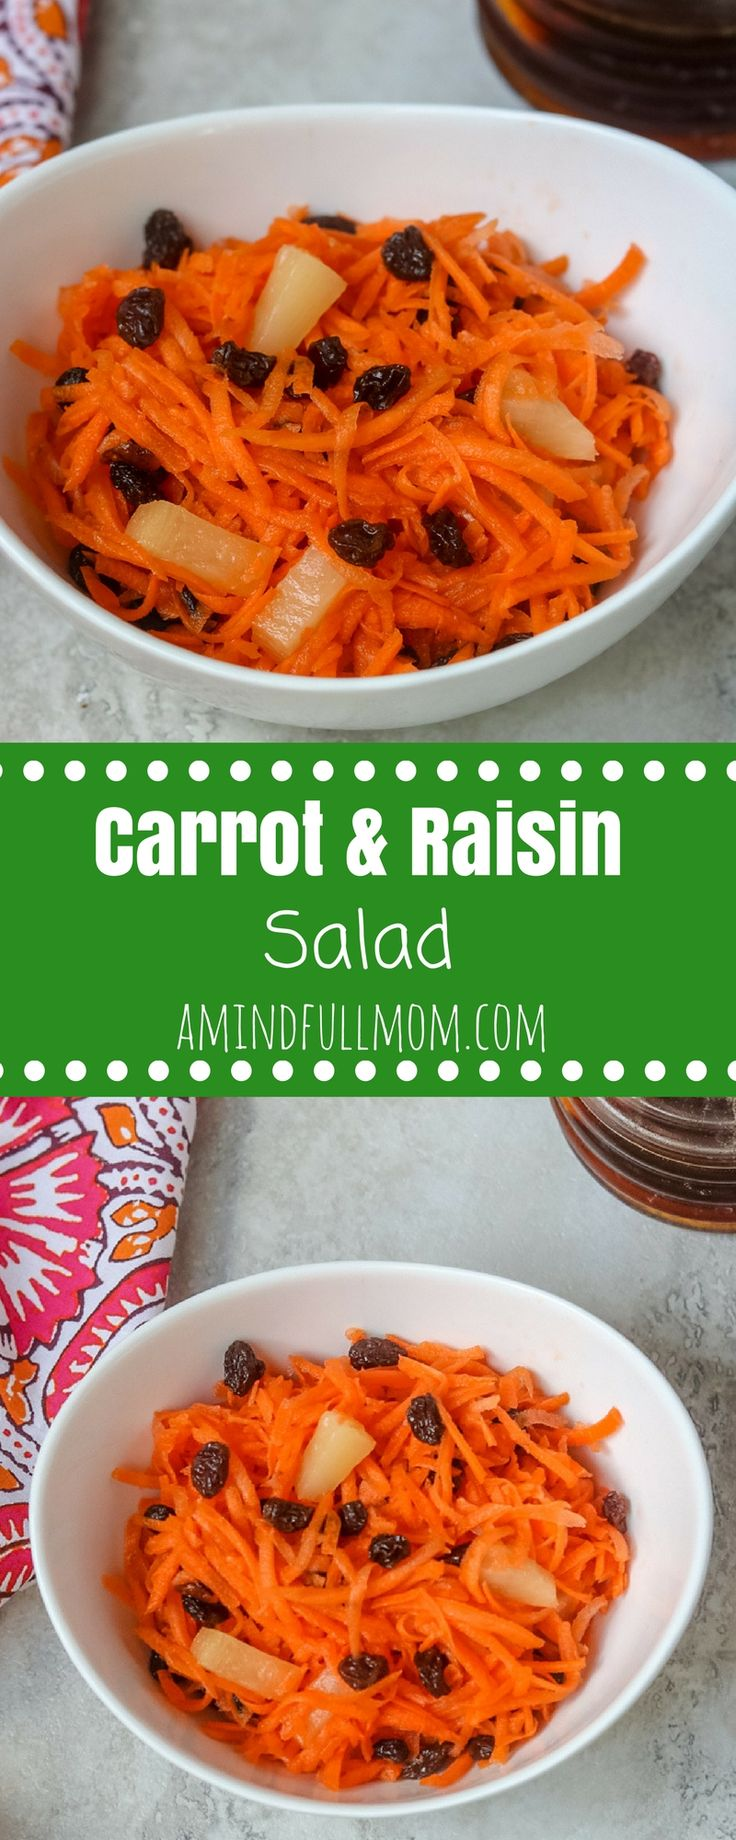 Carrot and Raisin Salad with Pineapple and NO MAYO: Shredded carrots, raisins and pineapple are tossed together with a sweet and tangy dressing to make an easy carrot salad. Vegan option. Gluten-Free. #saladrecipe #glutenfreerecipe #vegansalad #vegetarian  via @amindfullmom